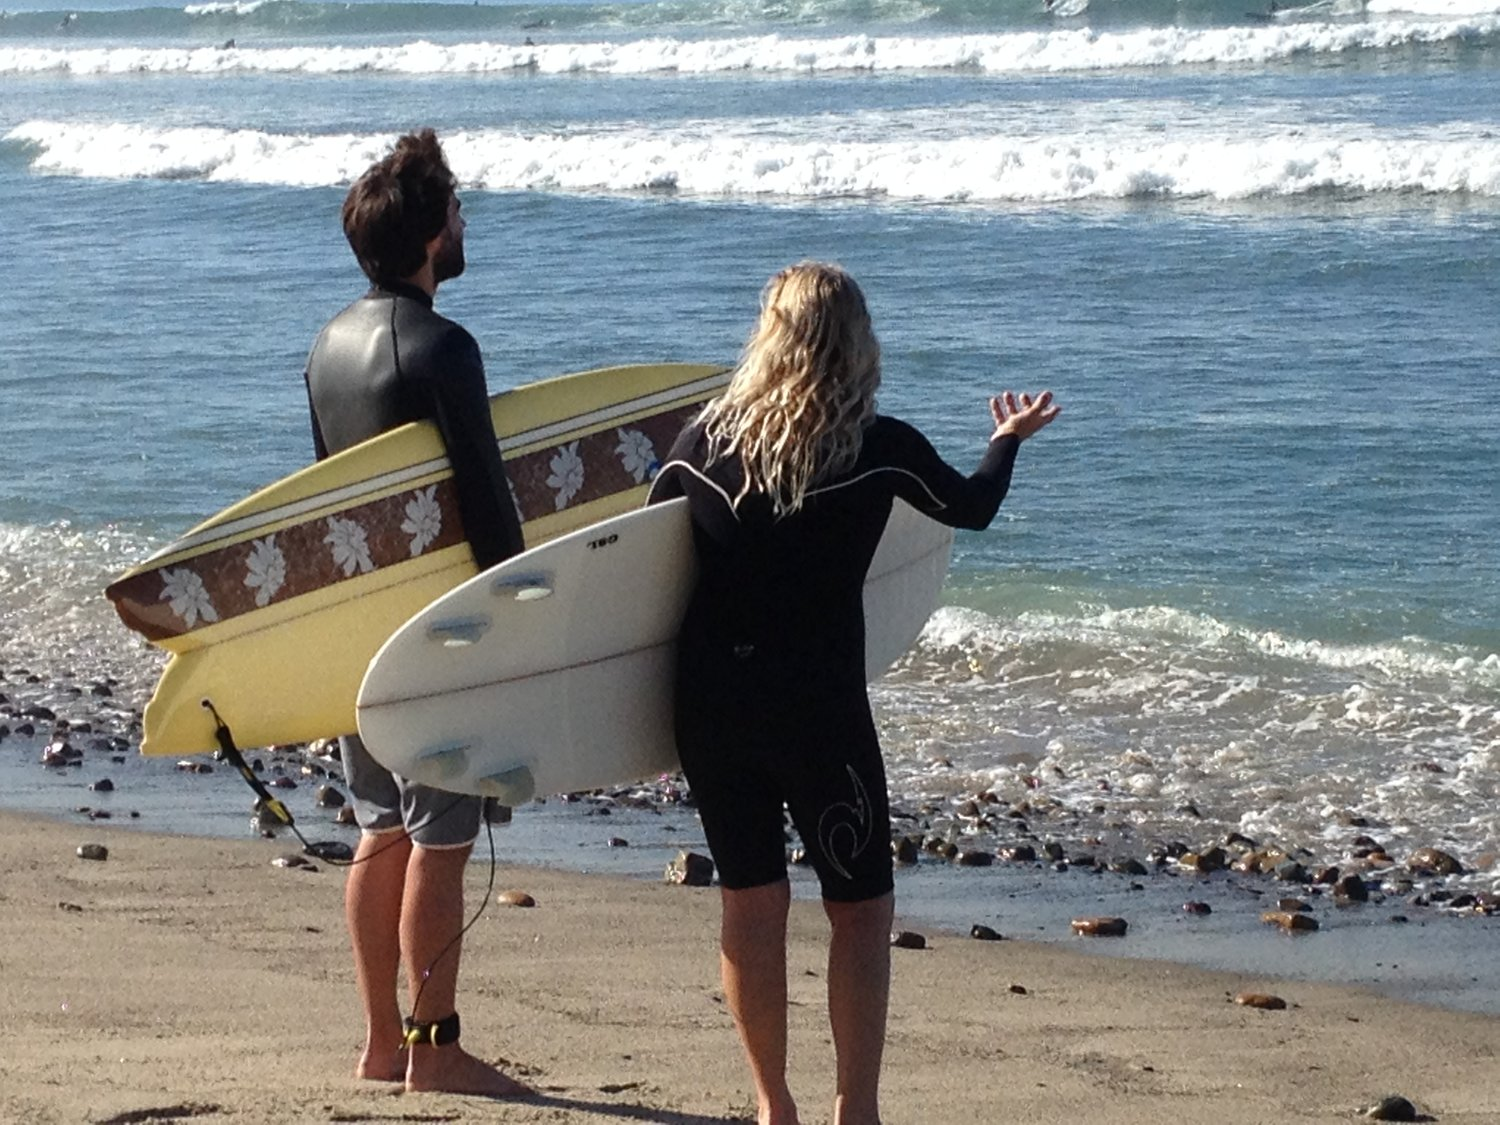 You even get surf coaching from the pros!